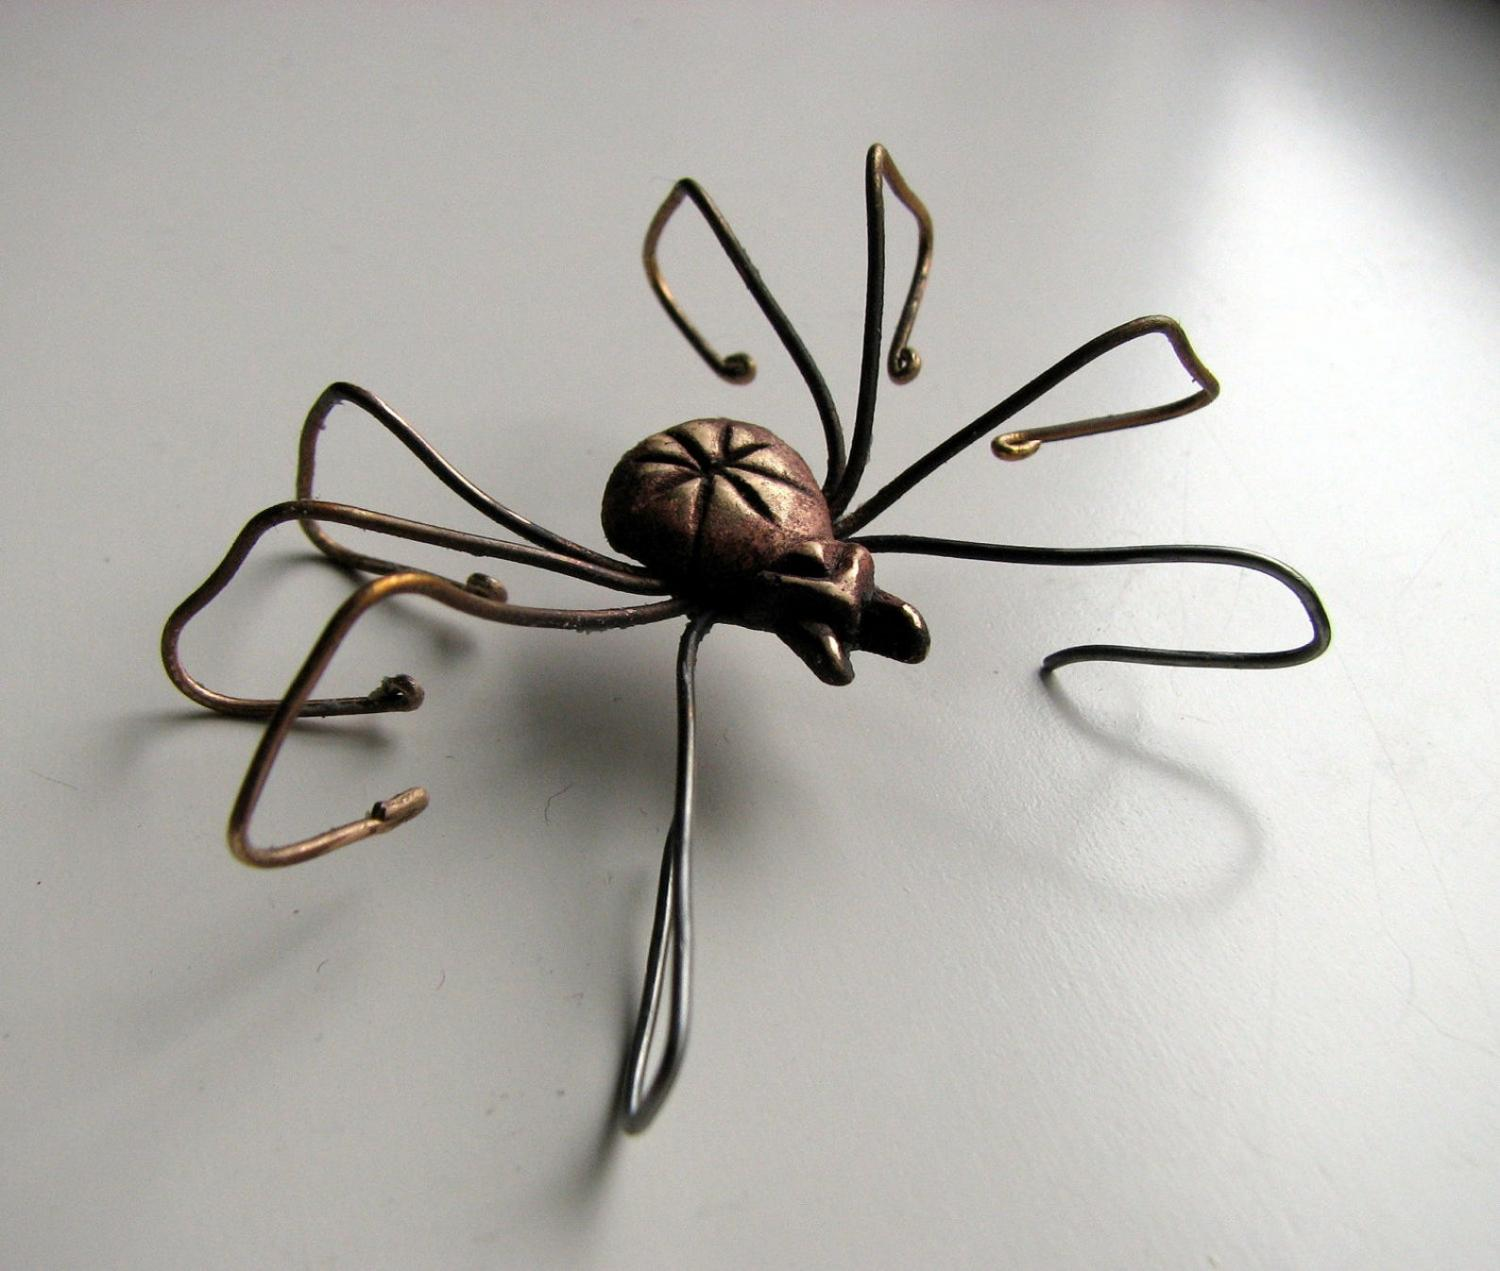 Giant Spider Earrings - Dangling spider earrings with spider leg through ear hole